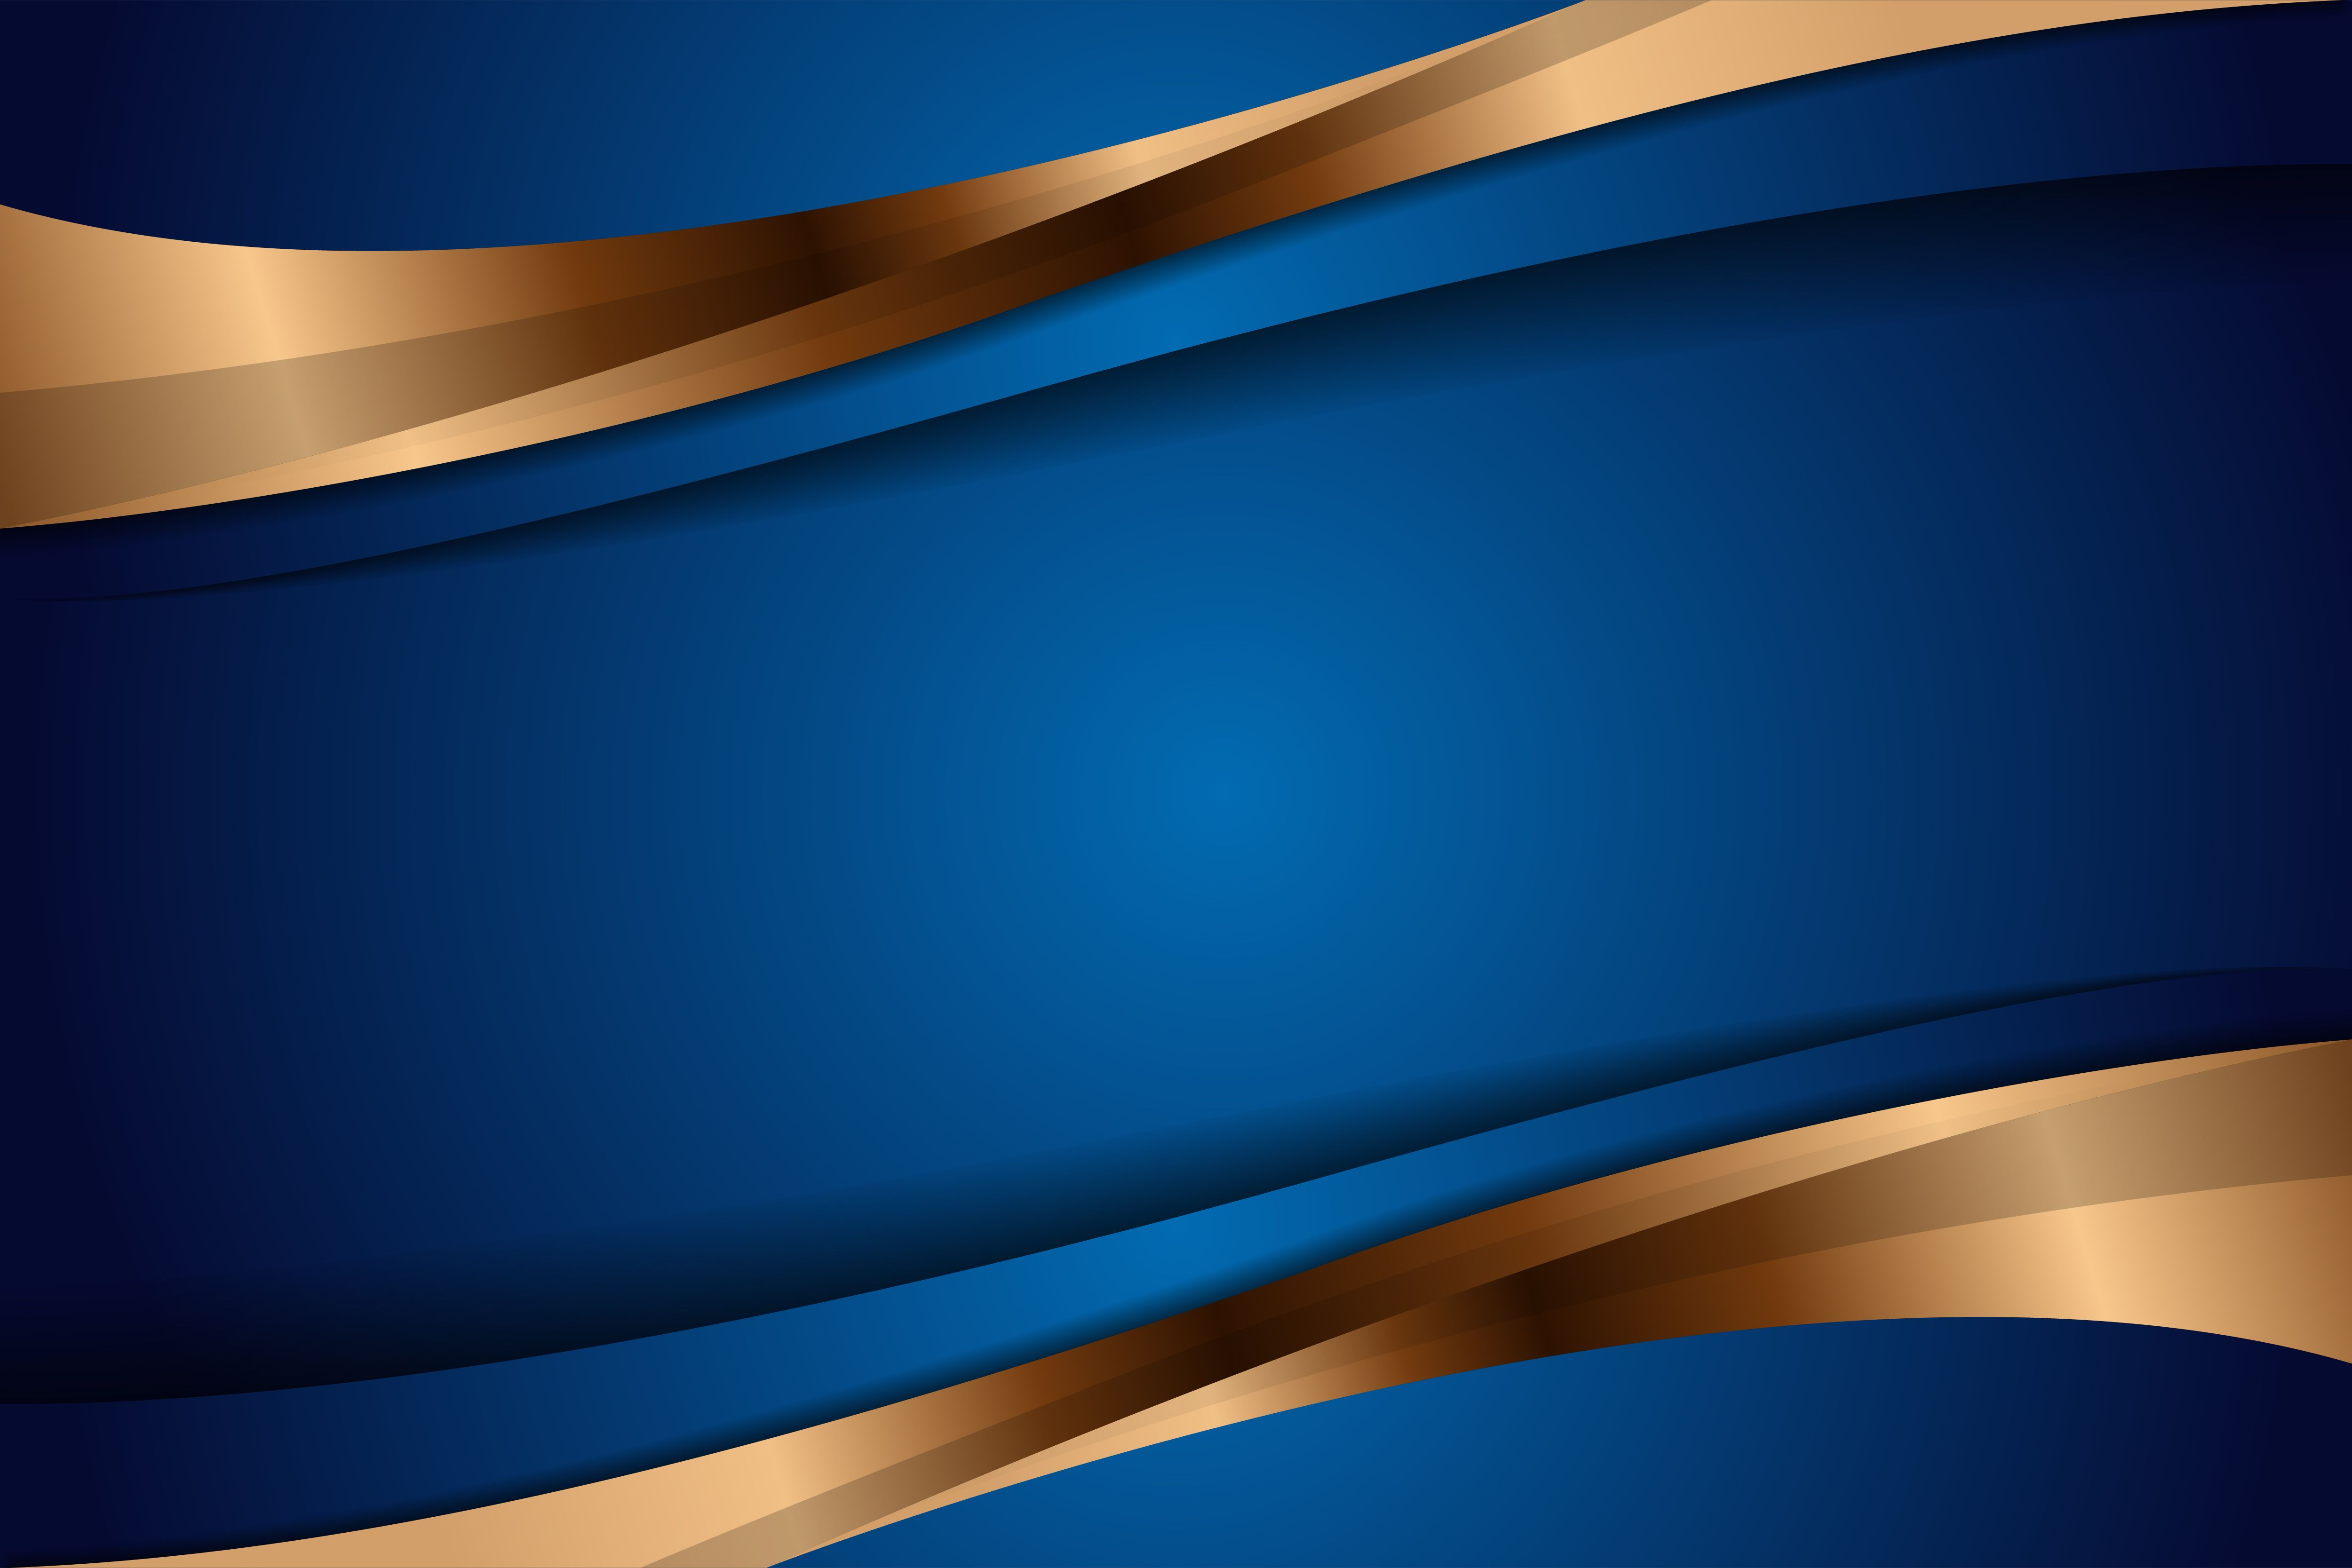 Abstract Background Blue Gold Graphic By Noory Shopper Creative Fabrica Abstract Backgrounds Blue Backgrounds Blue Abstract Backgrounds